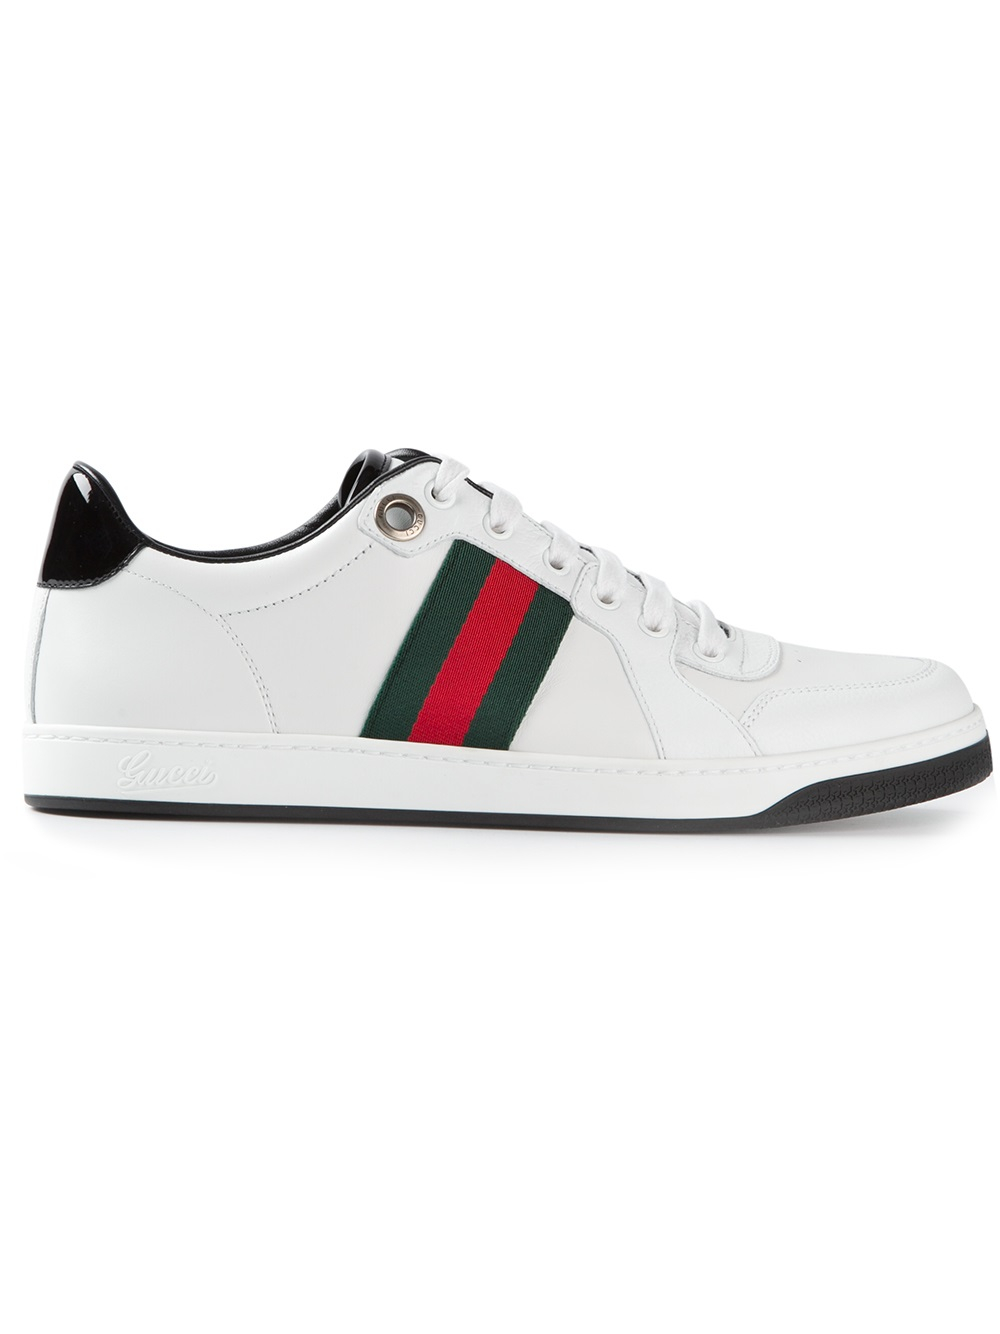 lyst gucci signature striped sneakers in white for men